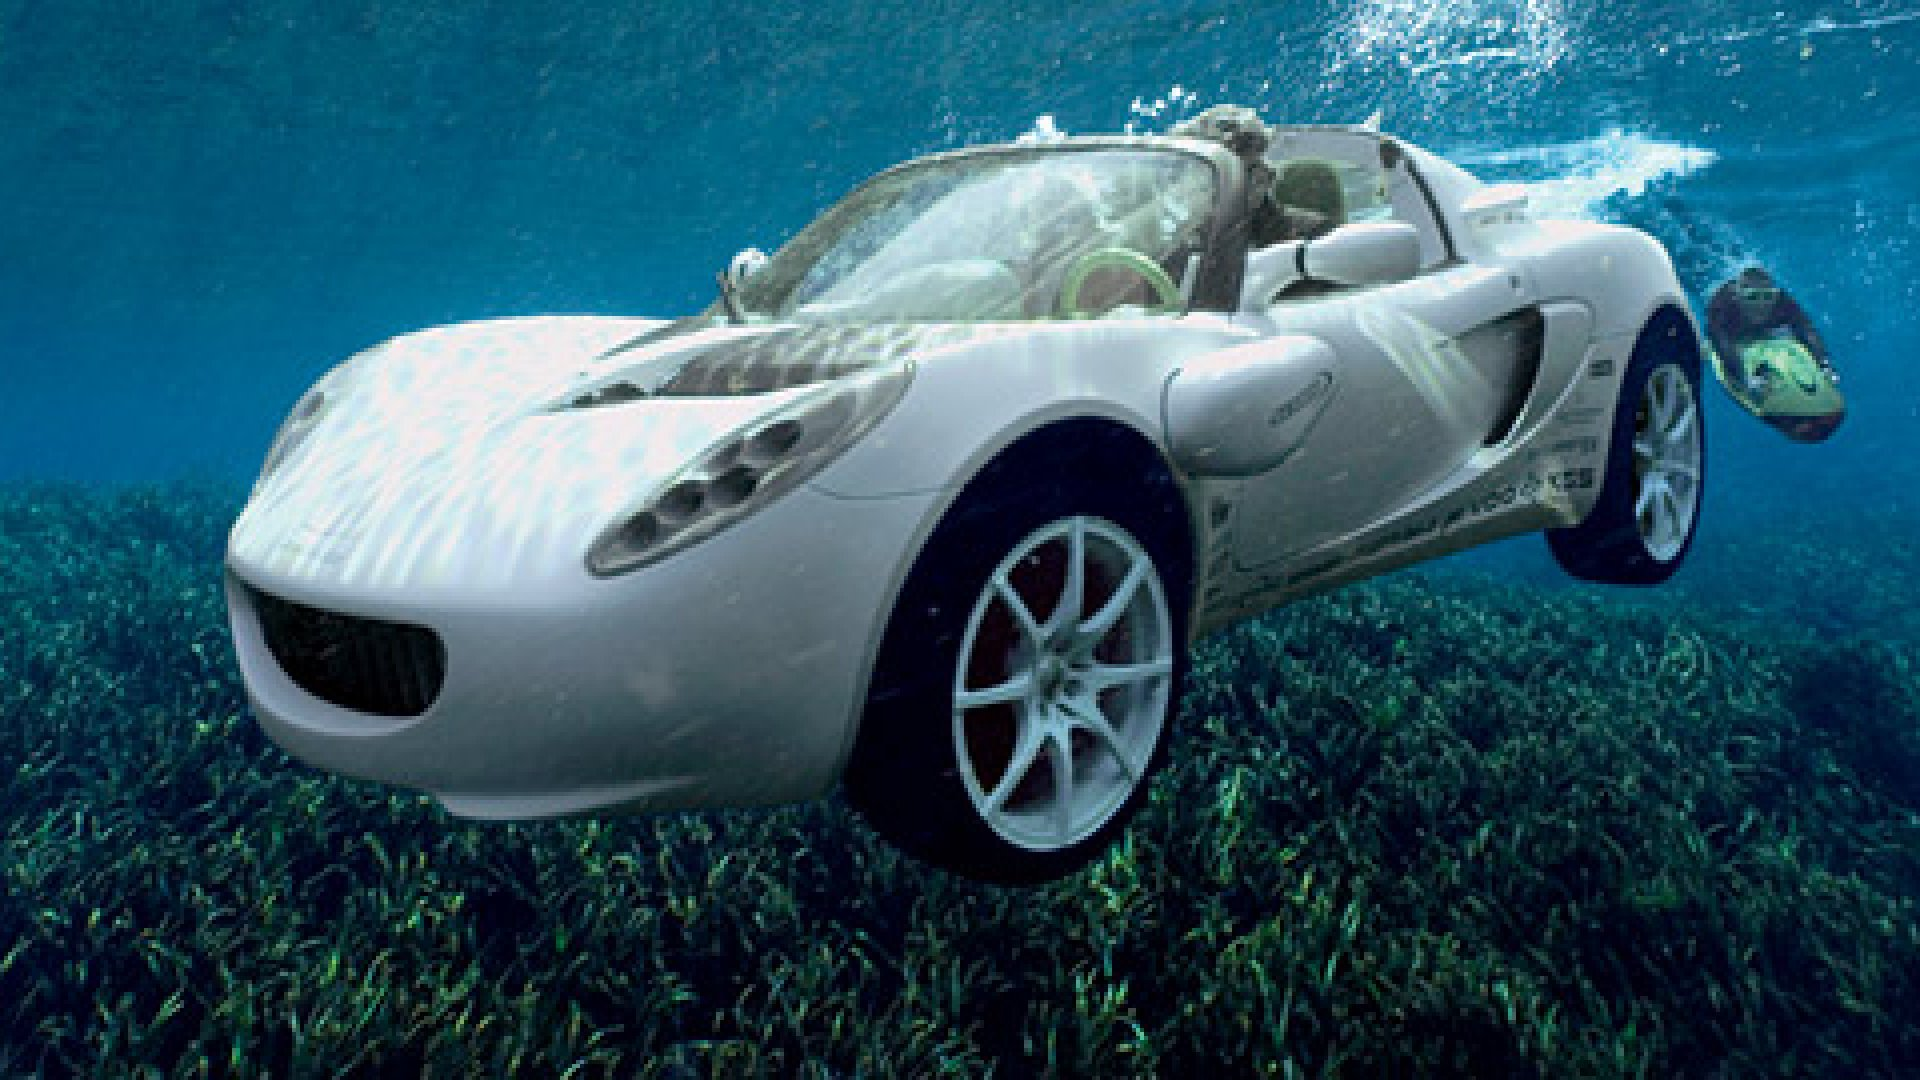 The underwater convertible James Bond uses to elude a Russian assassin in <em>The Spy Who Loved Me</em>